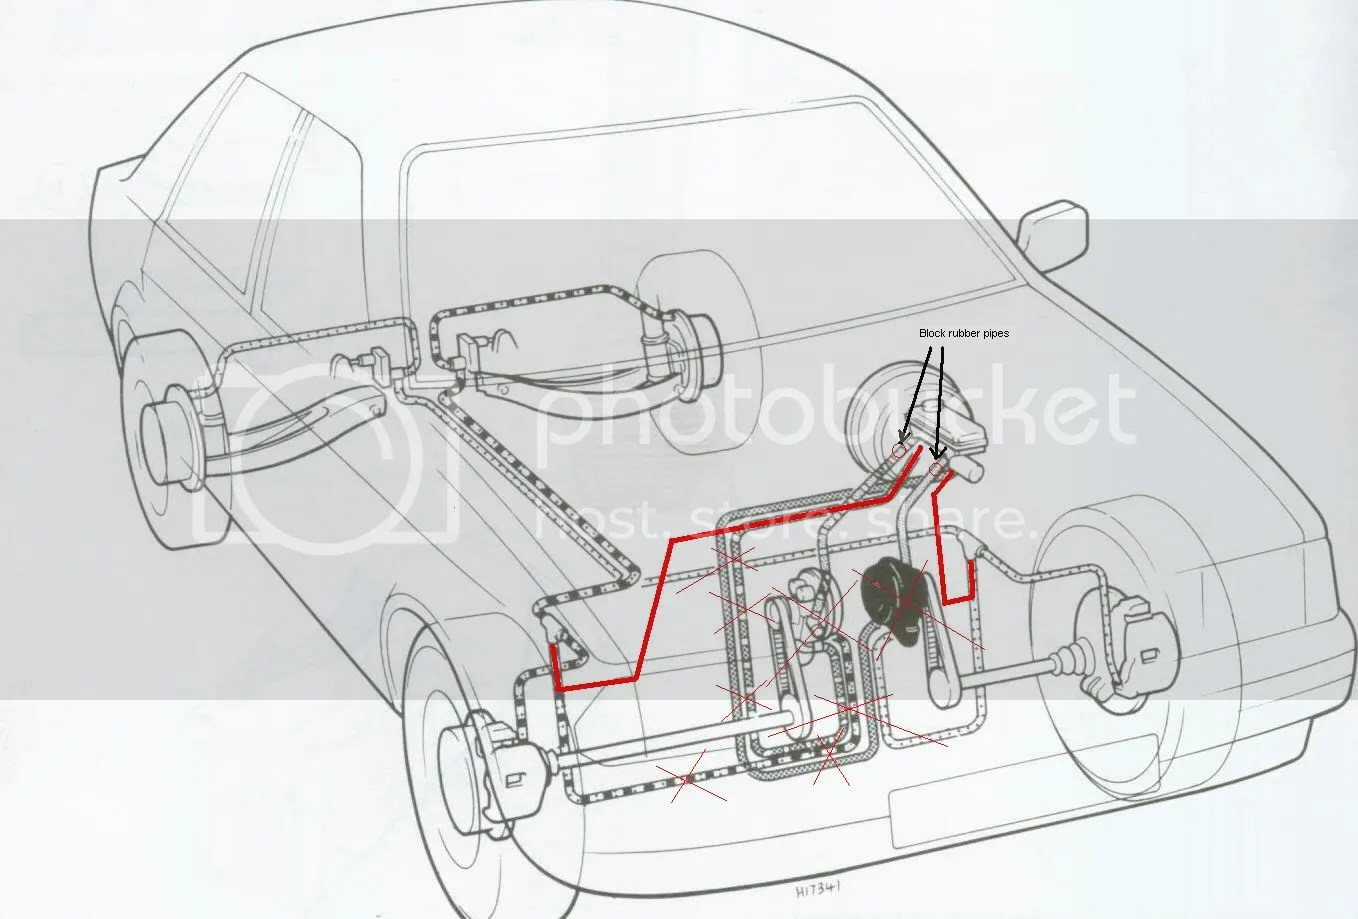 hight resolution of wanted brake pipe diagram for mk4 escort passionford ford focus escort rs forum discussion